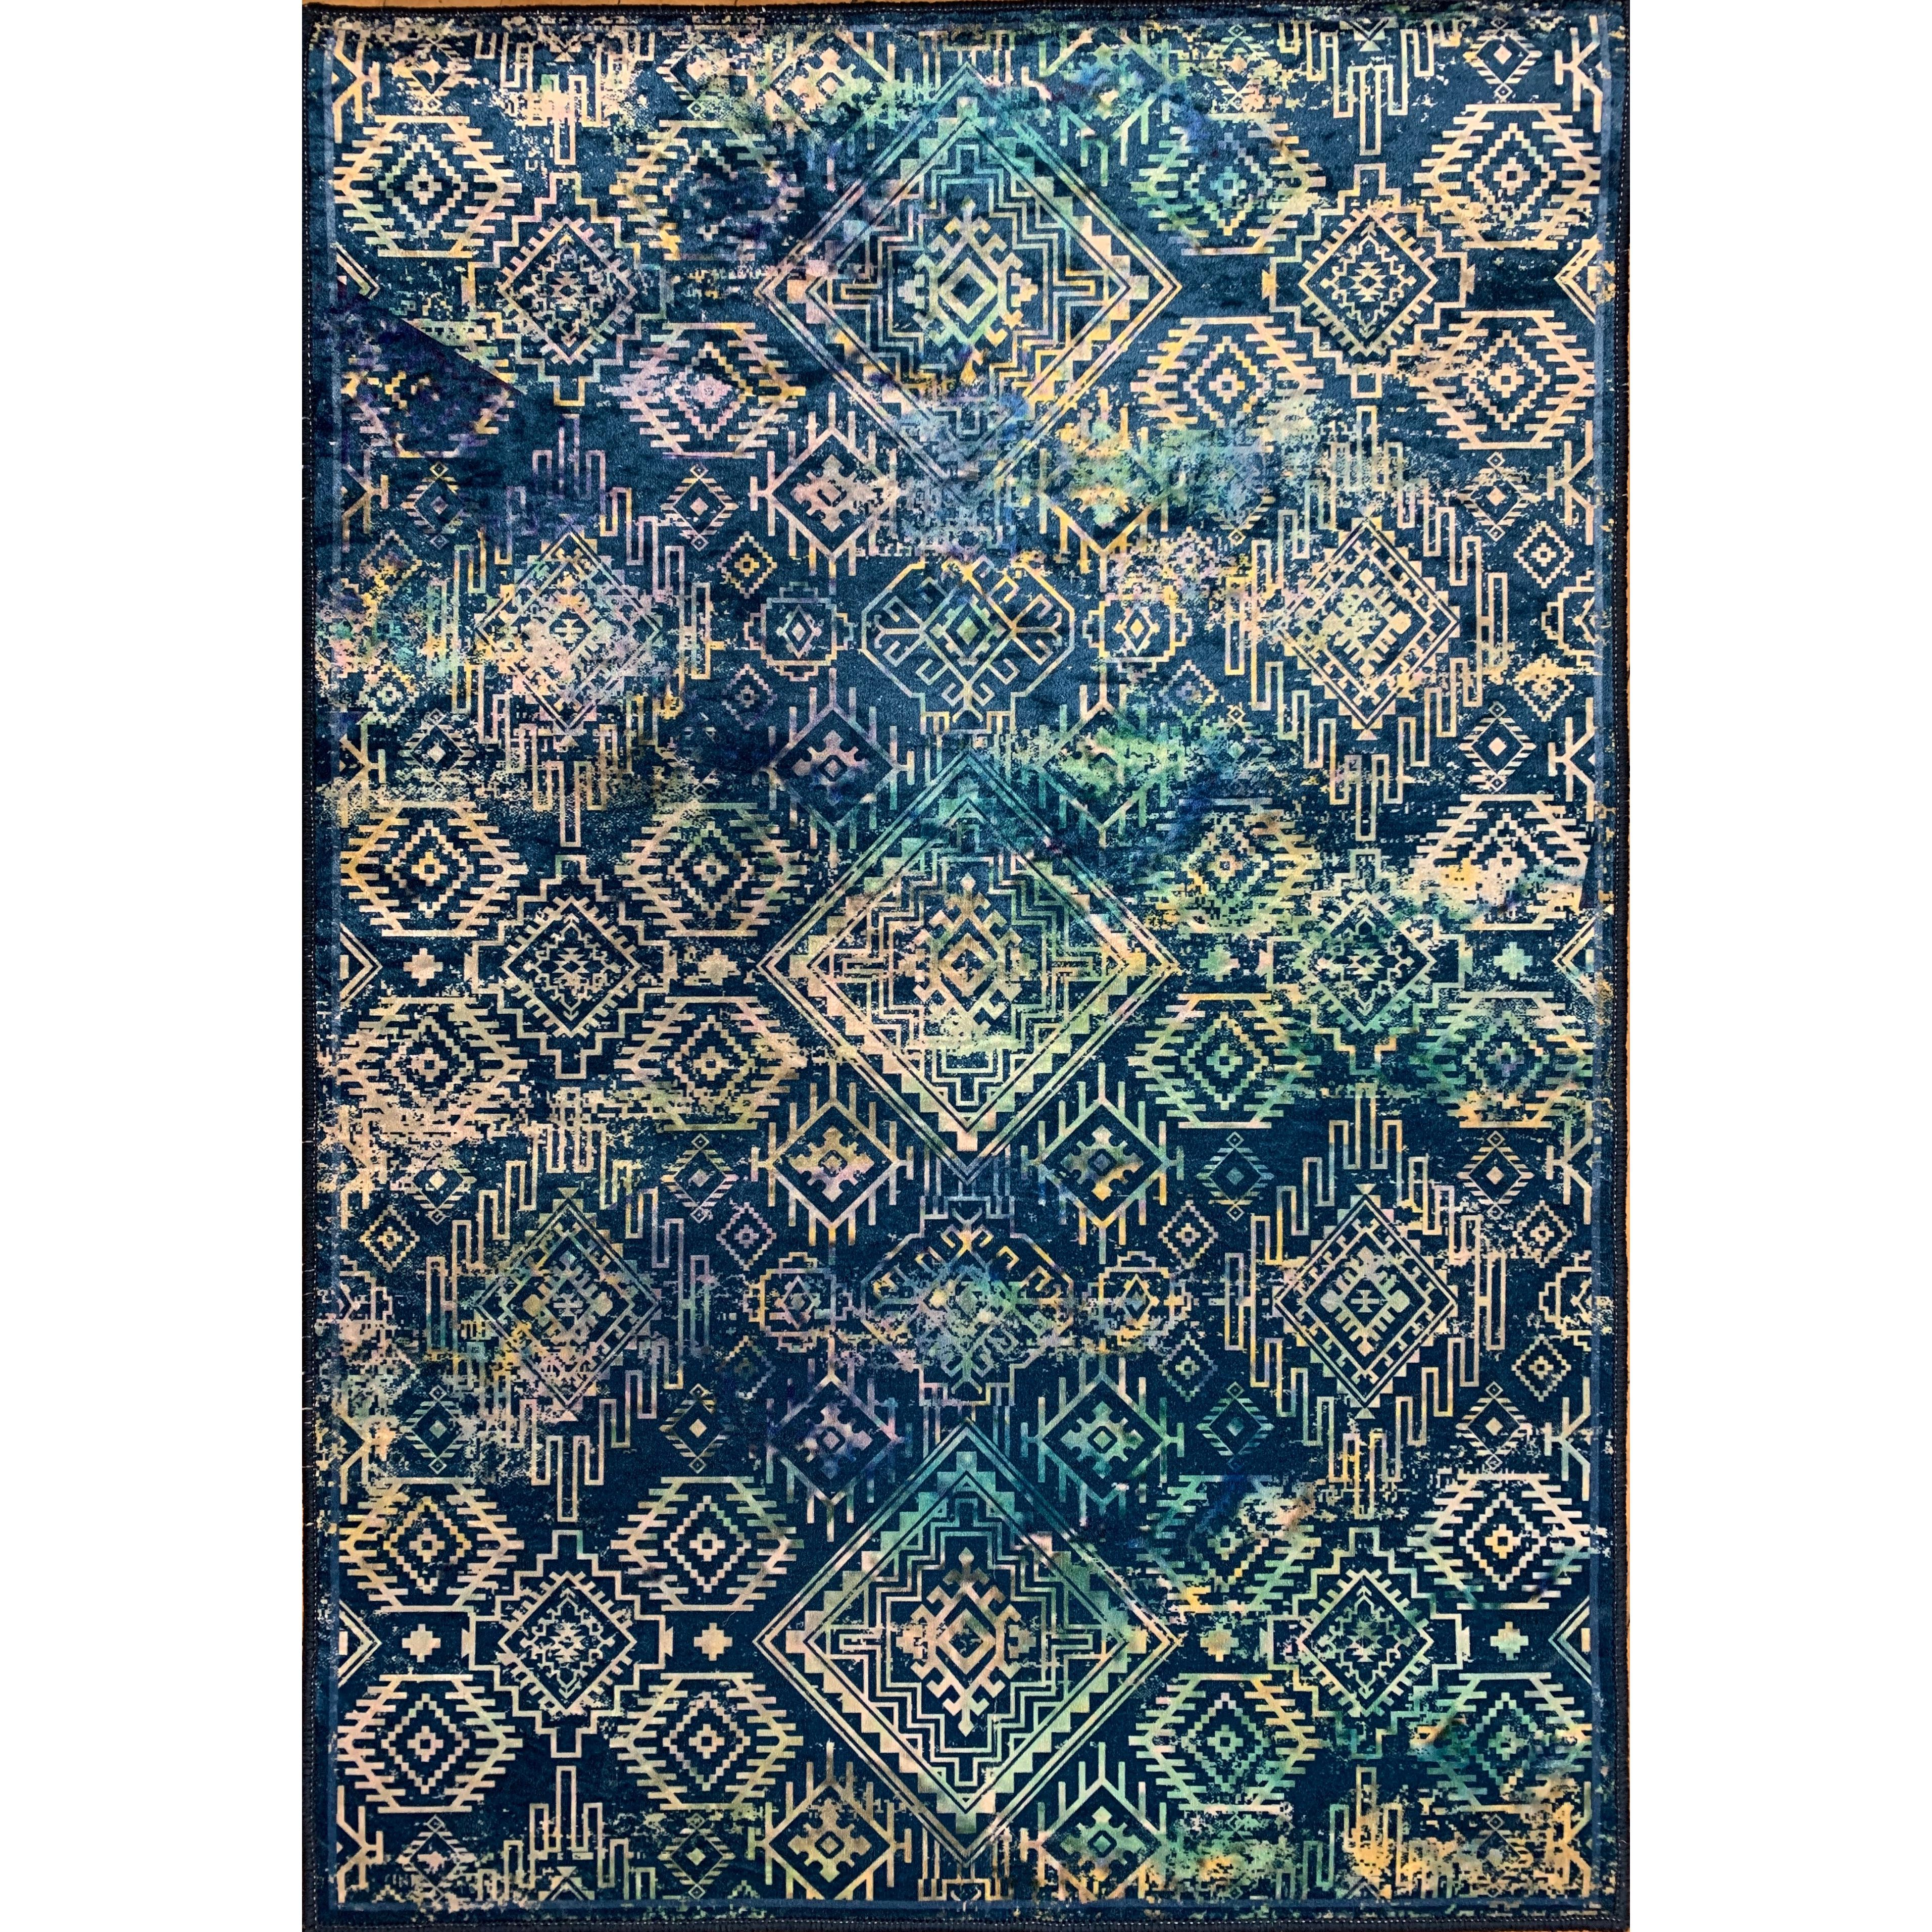 Emerald Collection Navy / Teal Rug 2ft2in x 3ft2in